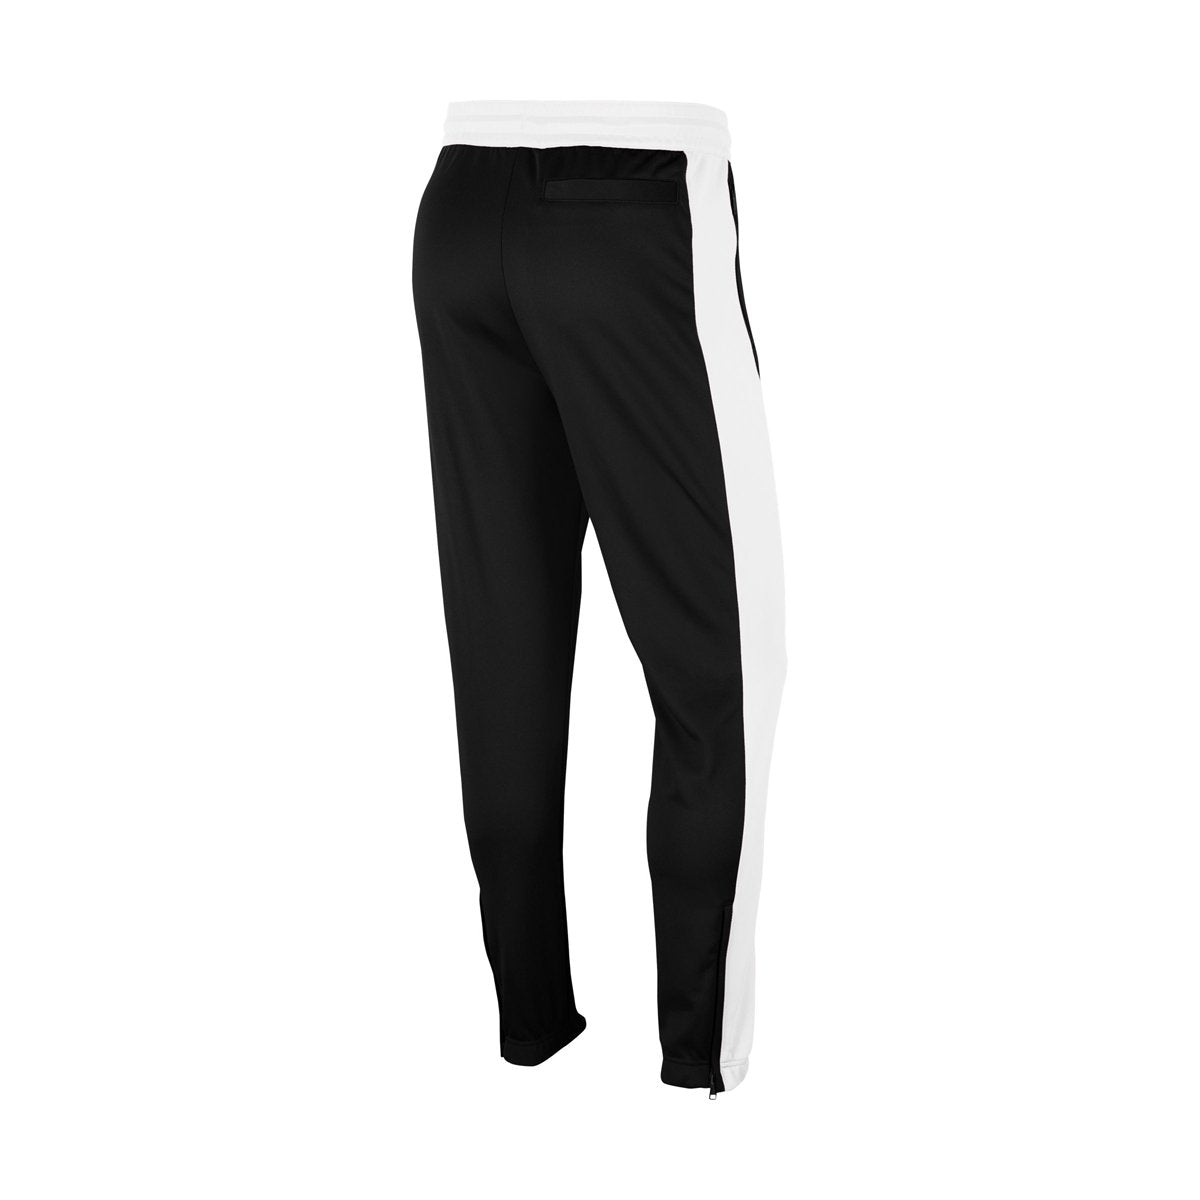 Jordan Jumpman Classics Men's Tricot Warmup Pants